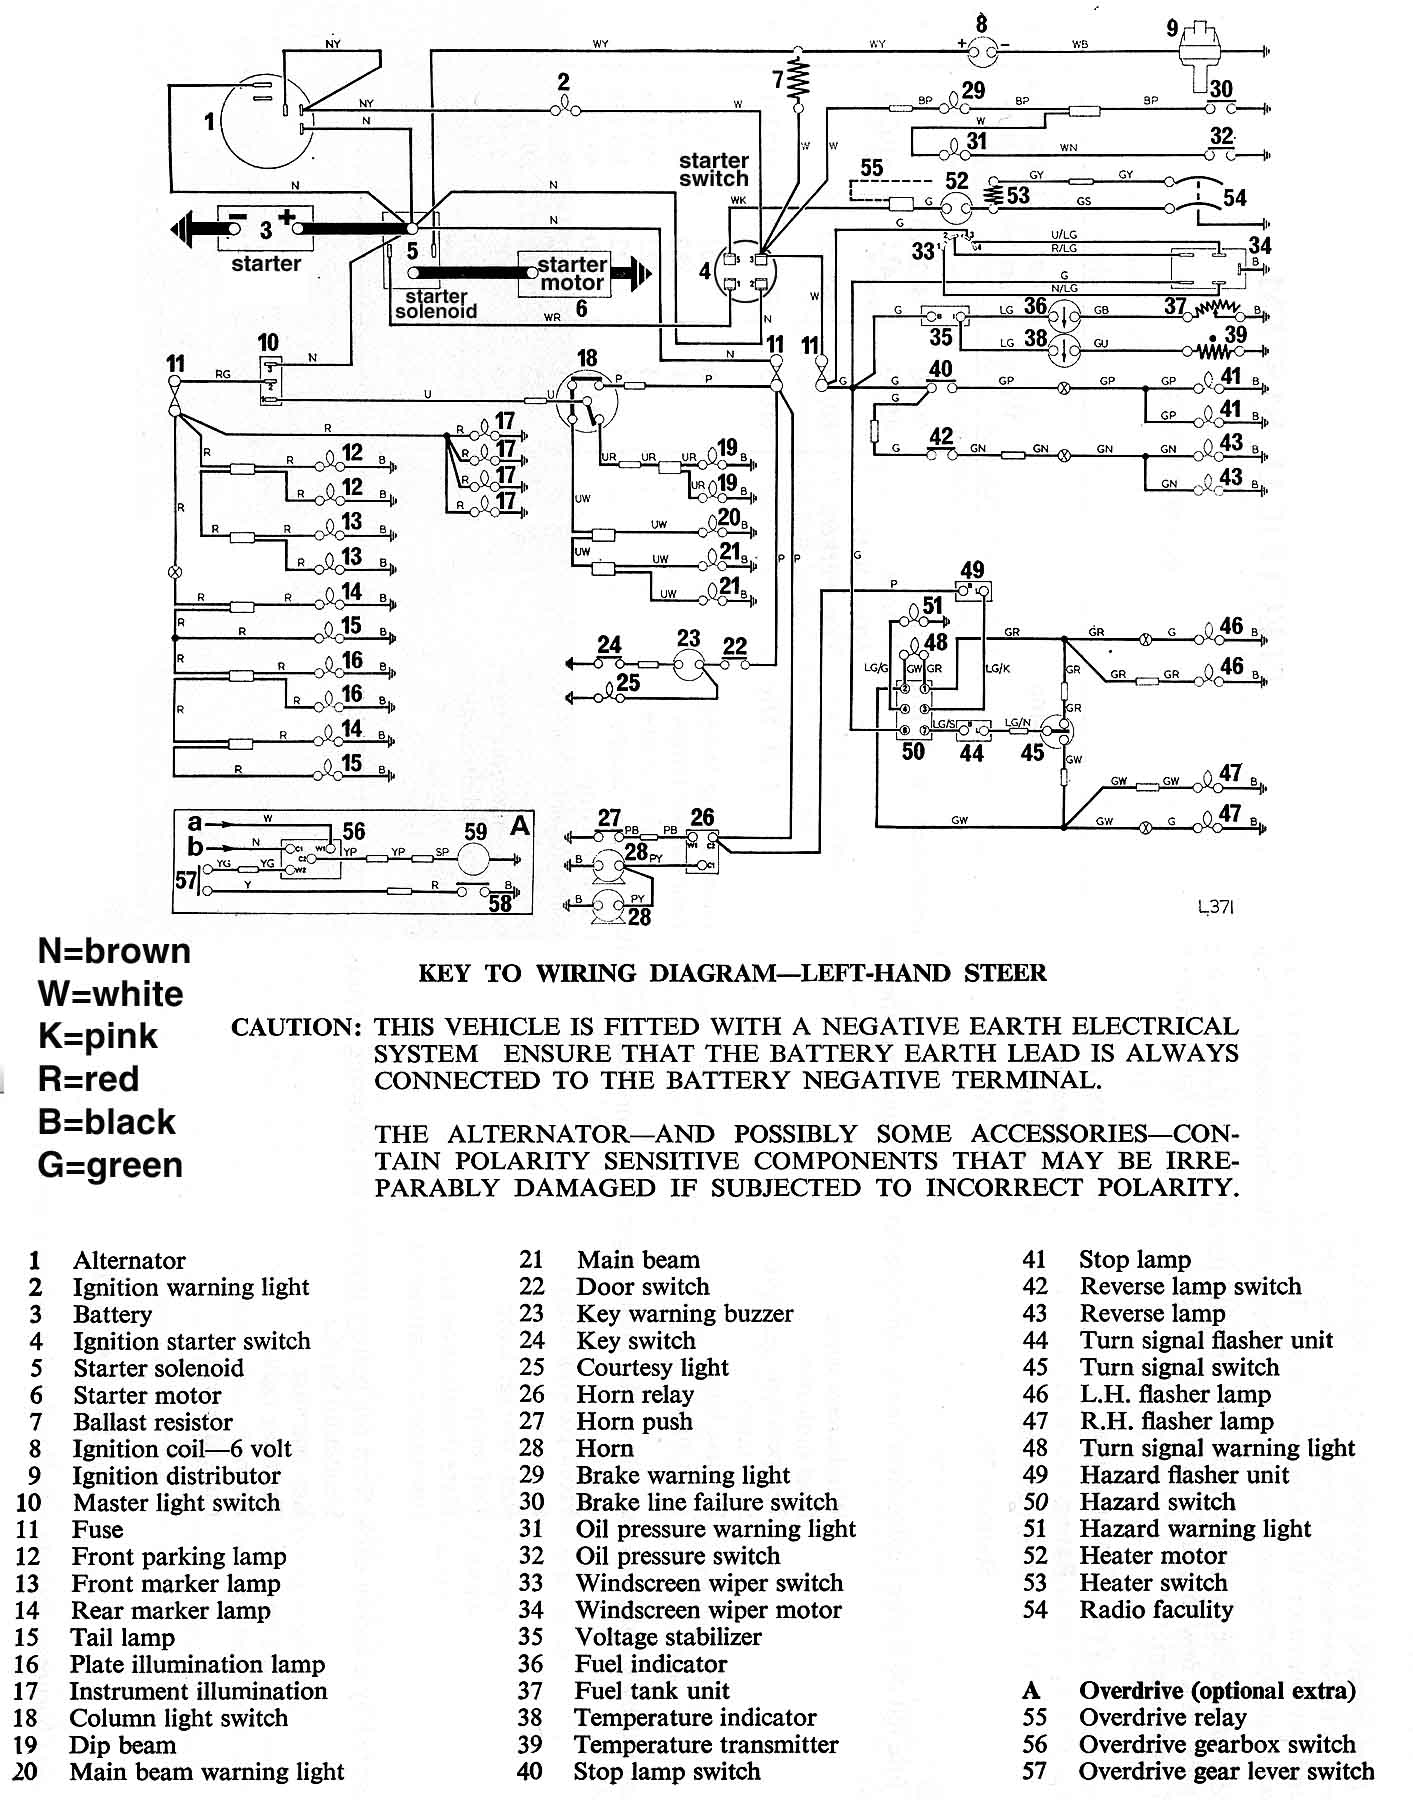 MKIVwire wiring schematics and diagrams triumph spitfire, gt6, herald 1980 triumph spitfire wiring diagram at alyssarenee.co